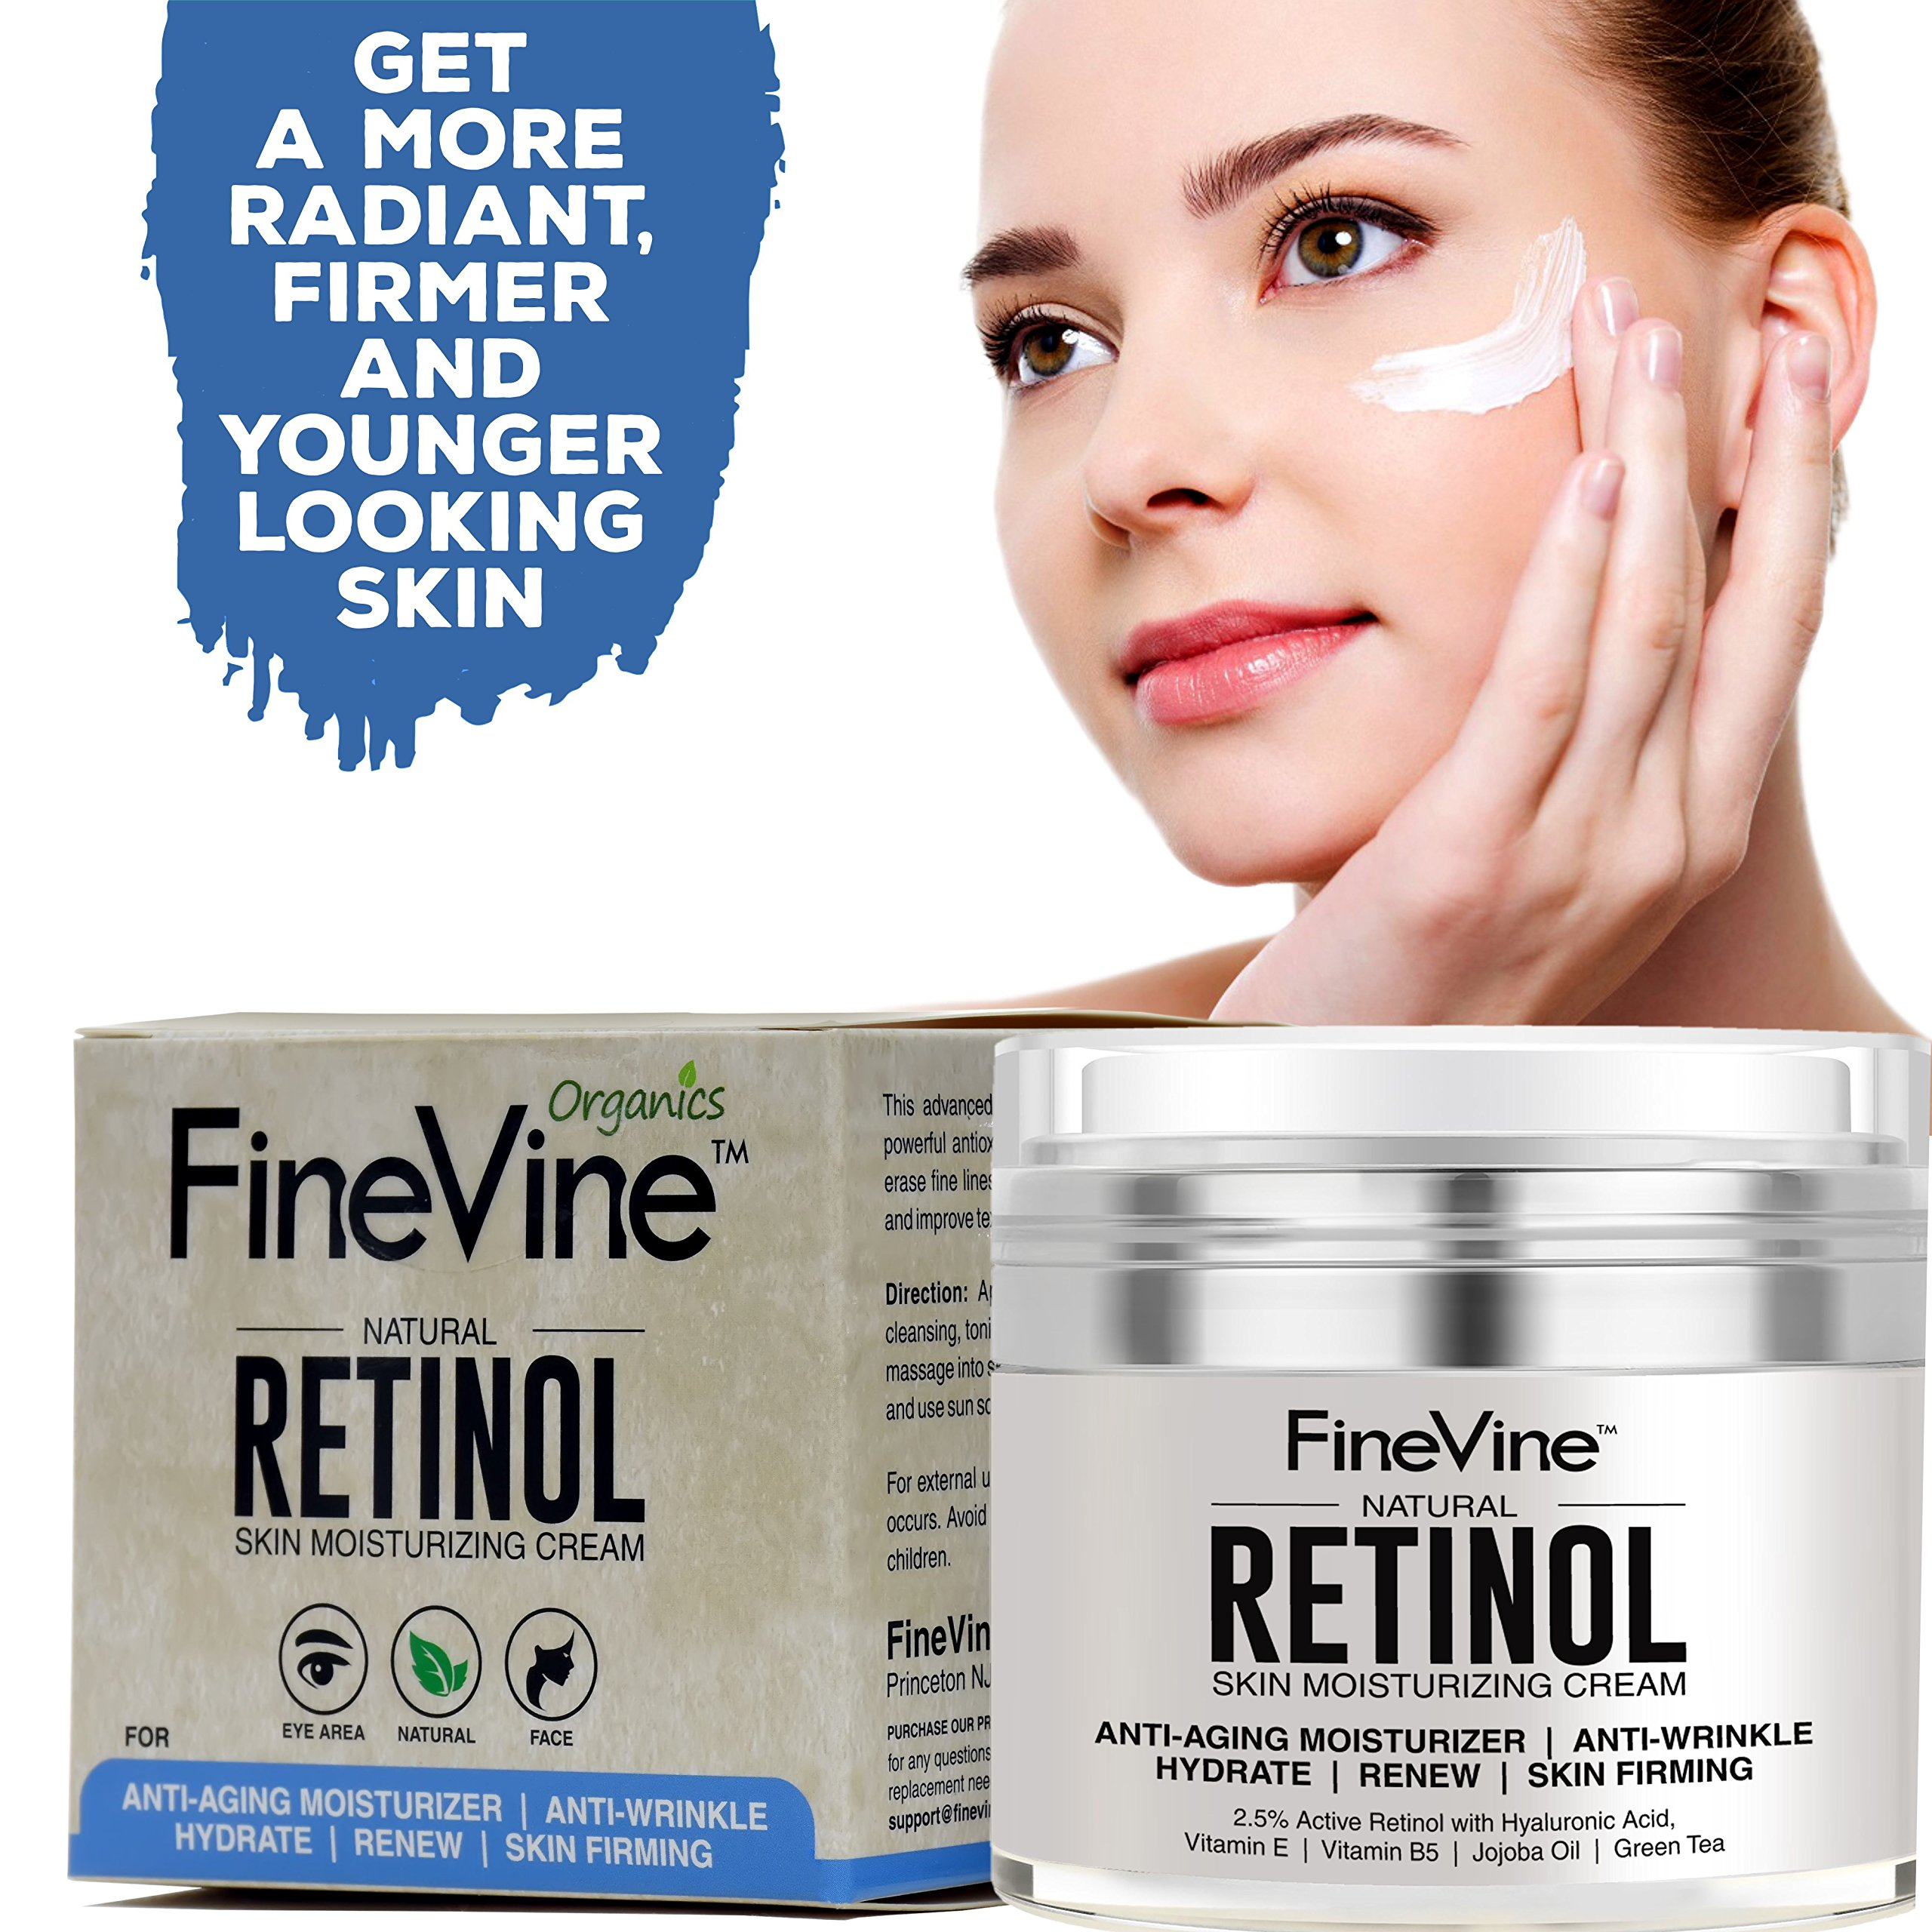 Retinol Moisturizer Cream for Face and Eye Area - Made in USA - with Hyaluronic Acid, Vitamin E - Best Day and Night Anti Aging Formula to Reduce Wrinkles, Fine Lines & Even Skin Tone. by FineVine (Image #7)